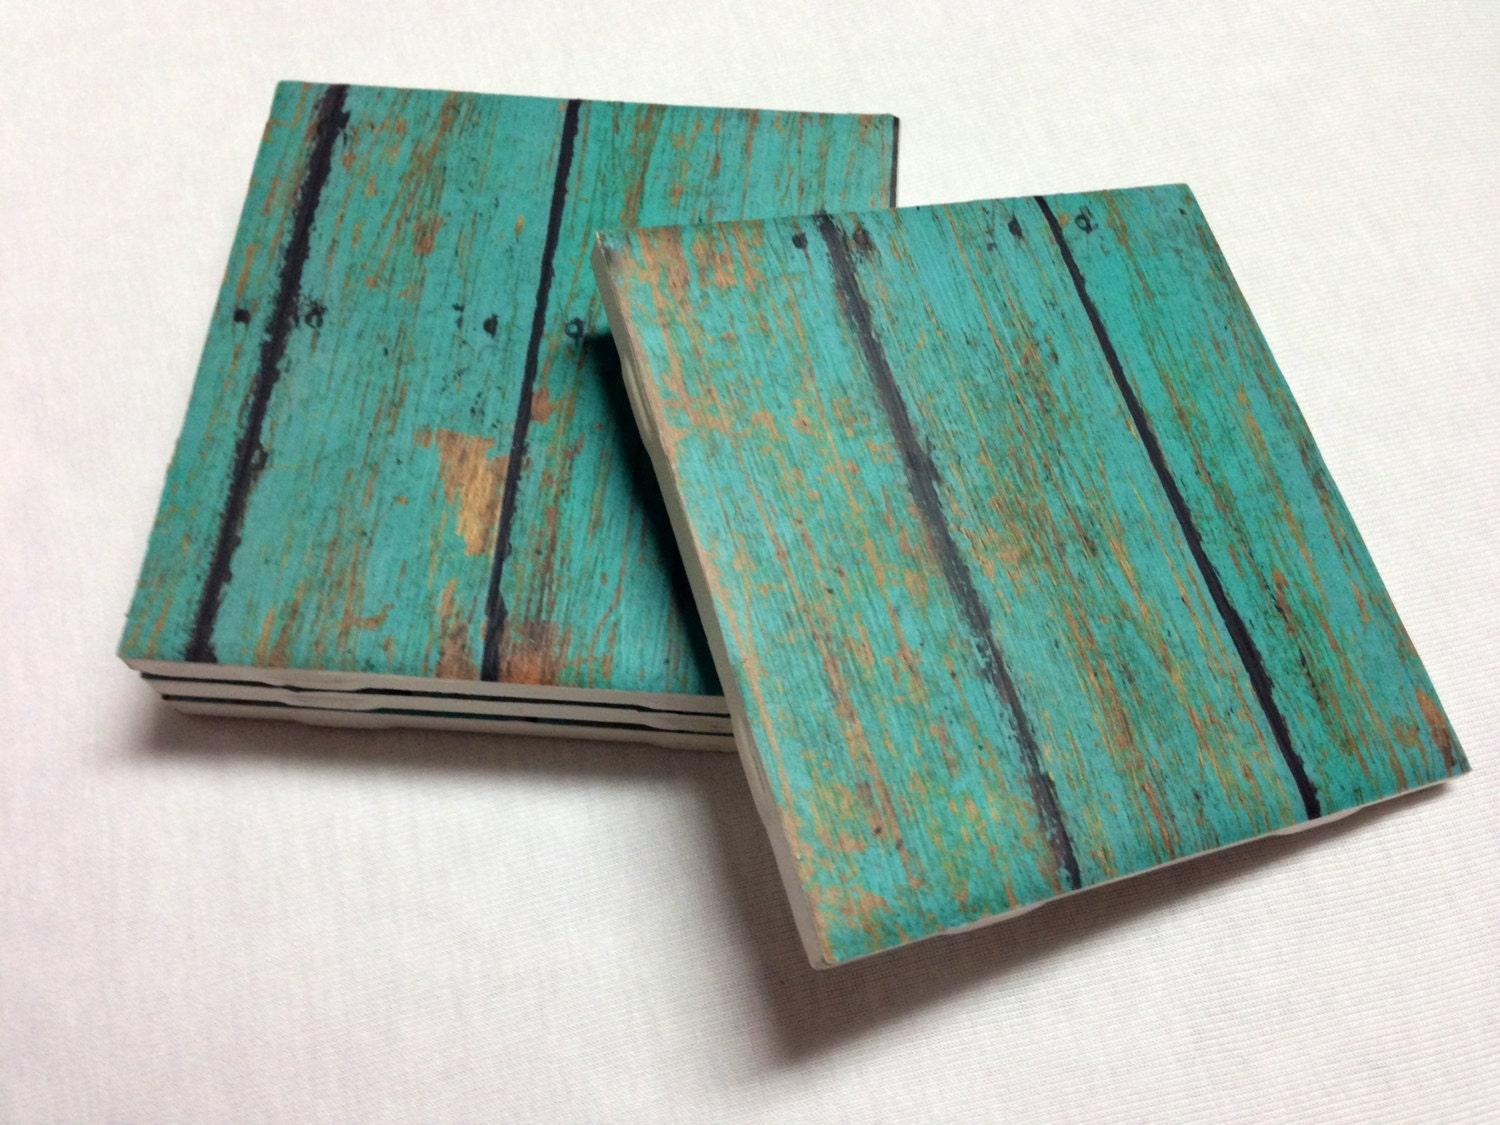 Turquoise Coasters Teal Wood Design Home Decor Drink